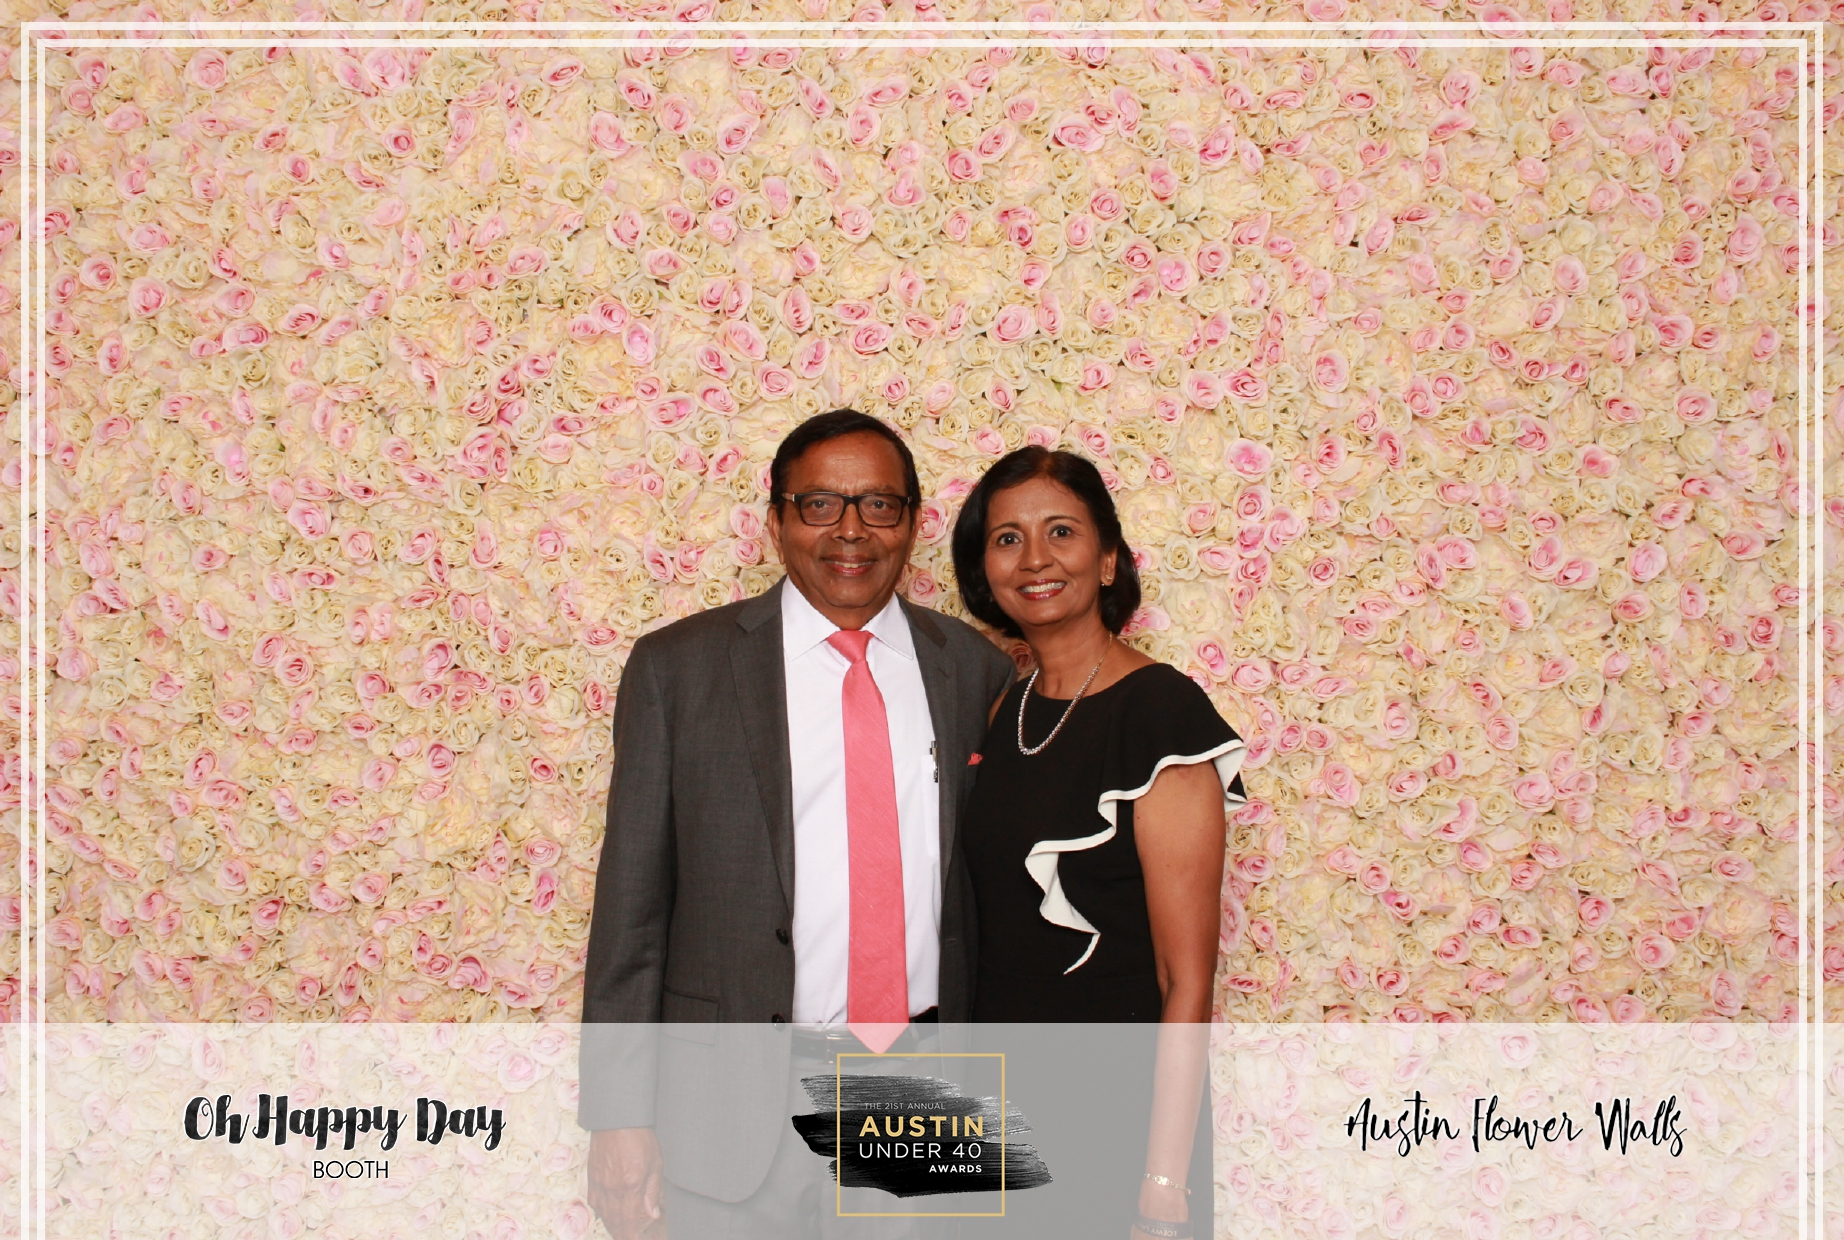 Oh Happy Day Booth - Austin Under 40-40.jpg